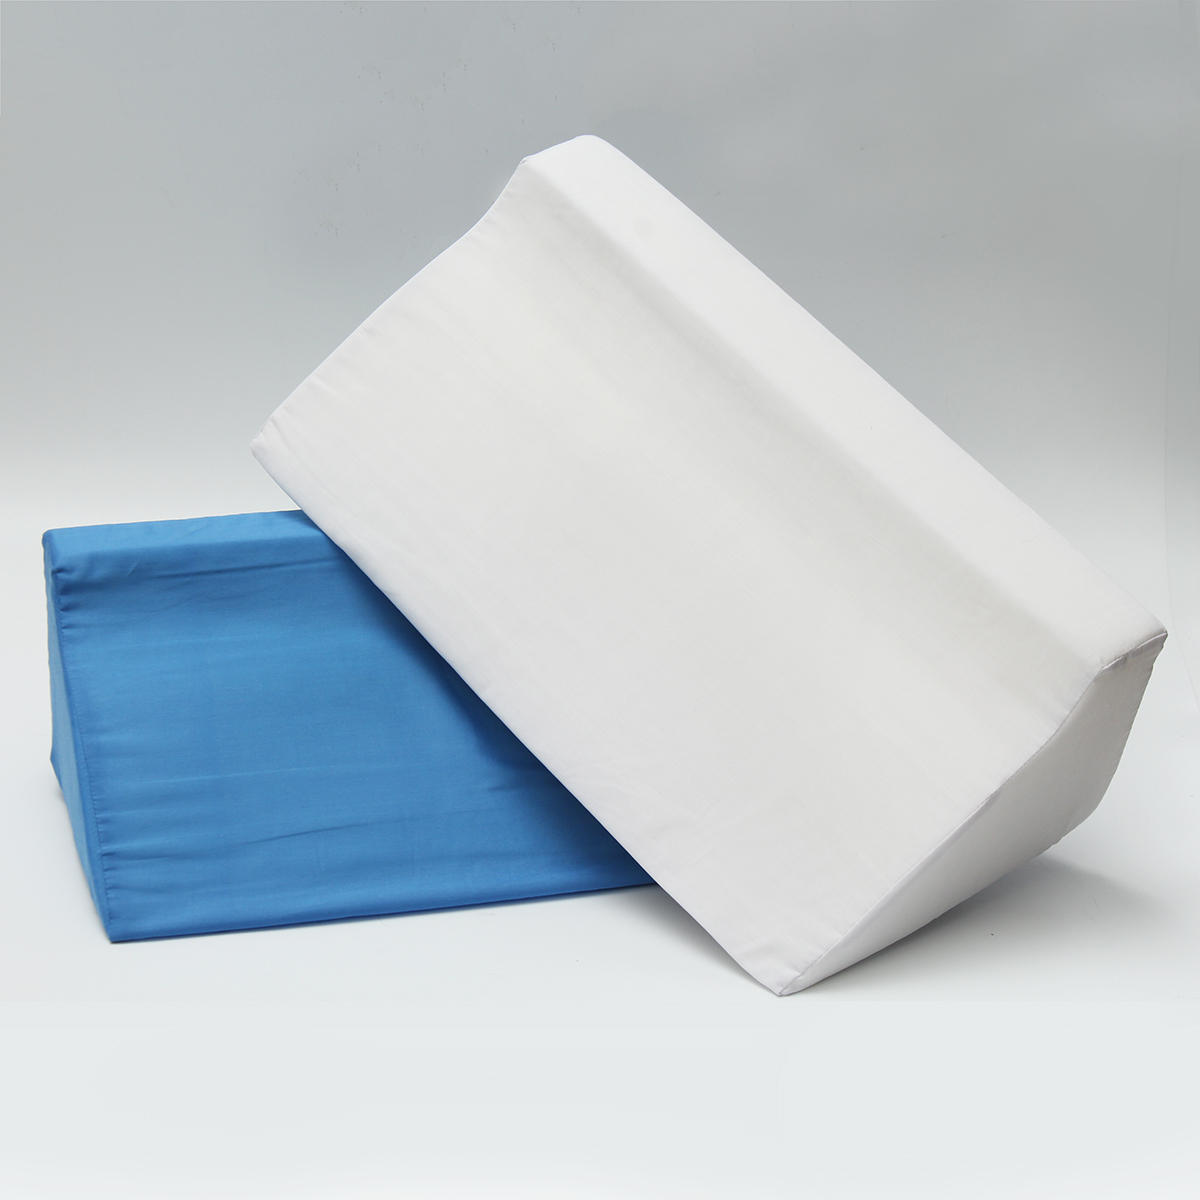 Angled Pillow For Acid Reflux Acid Reflux Foam Bed Wedge Pillow Leg Elevation Back Lumbar Support Cushions